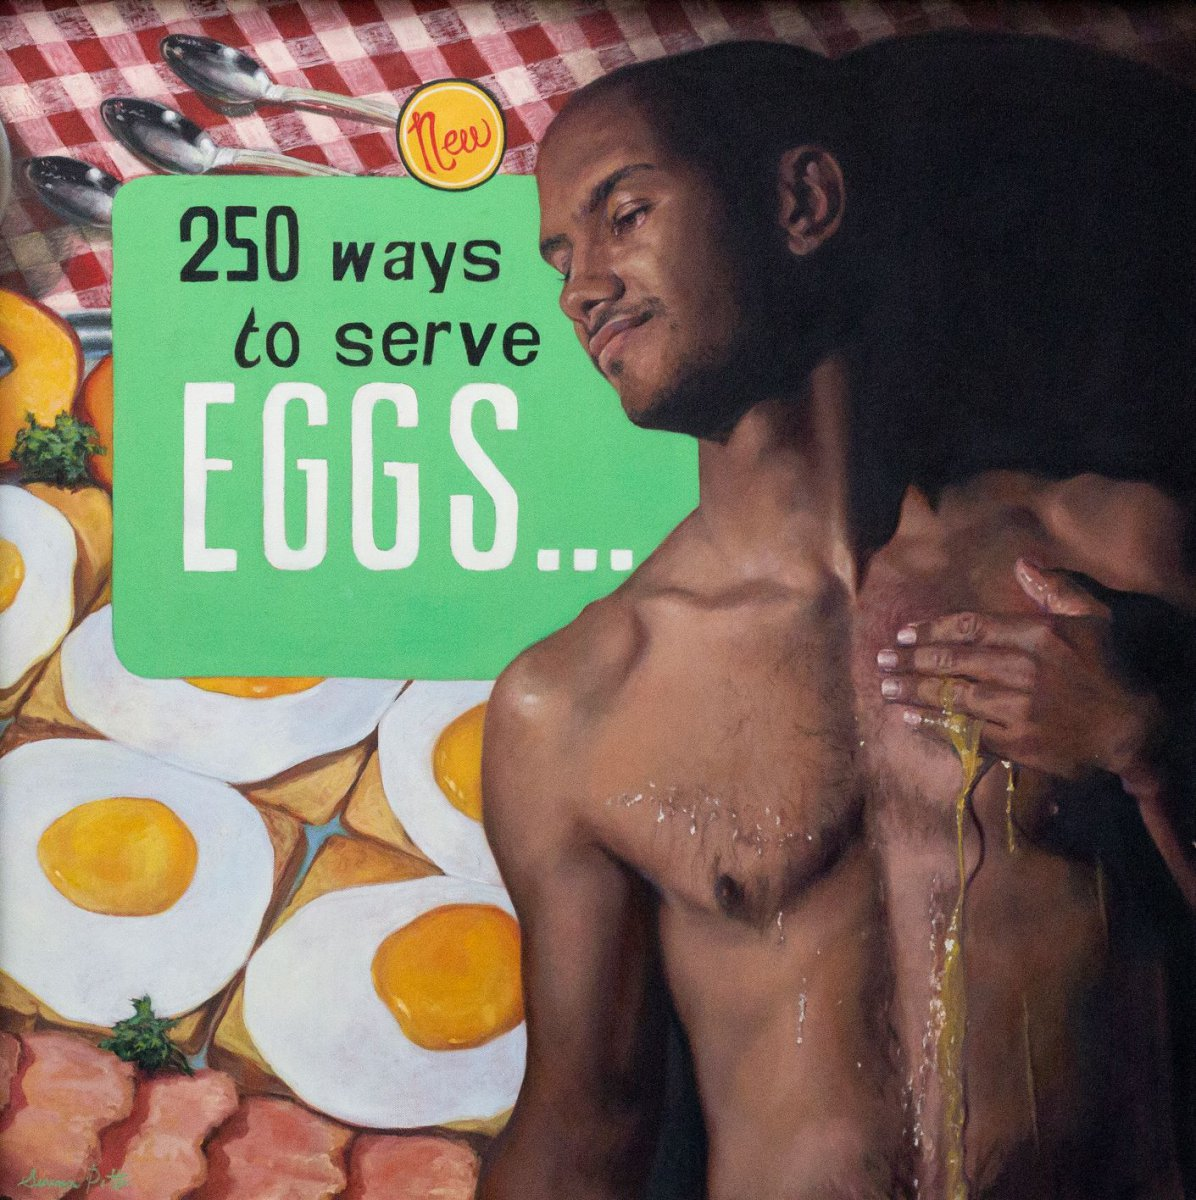 250 Ways to Serve Eggs - SERENA POTTER